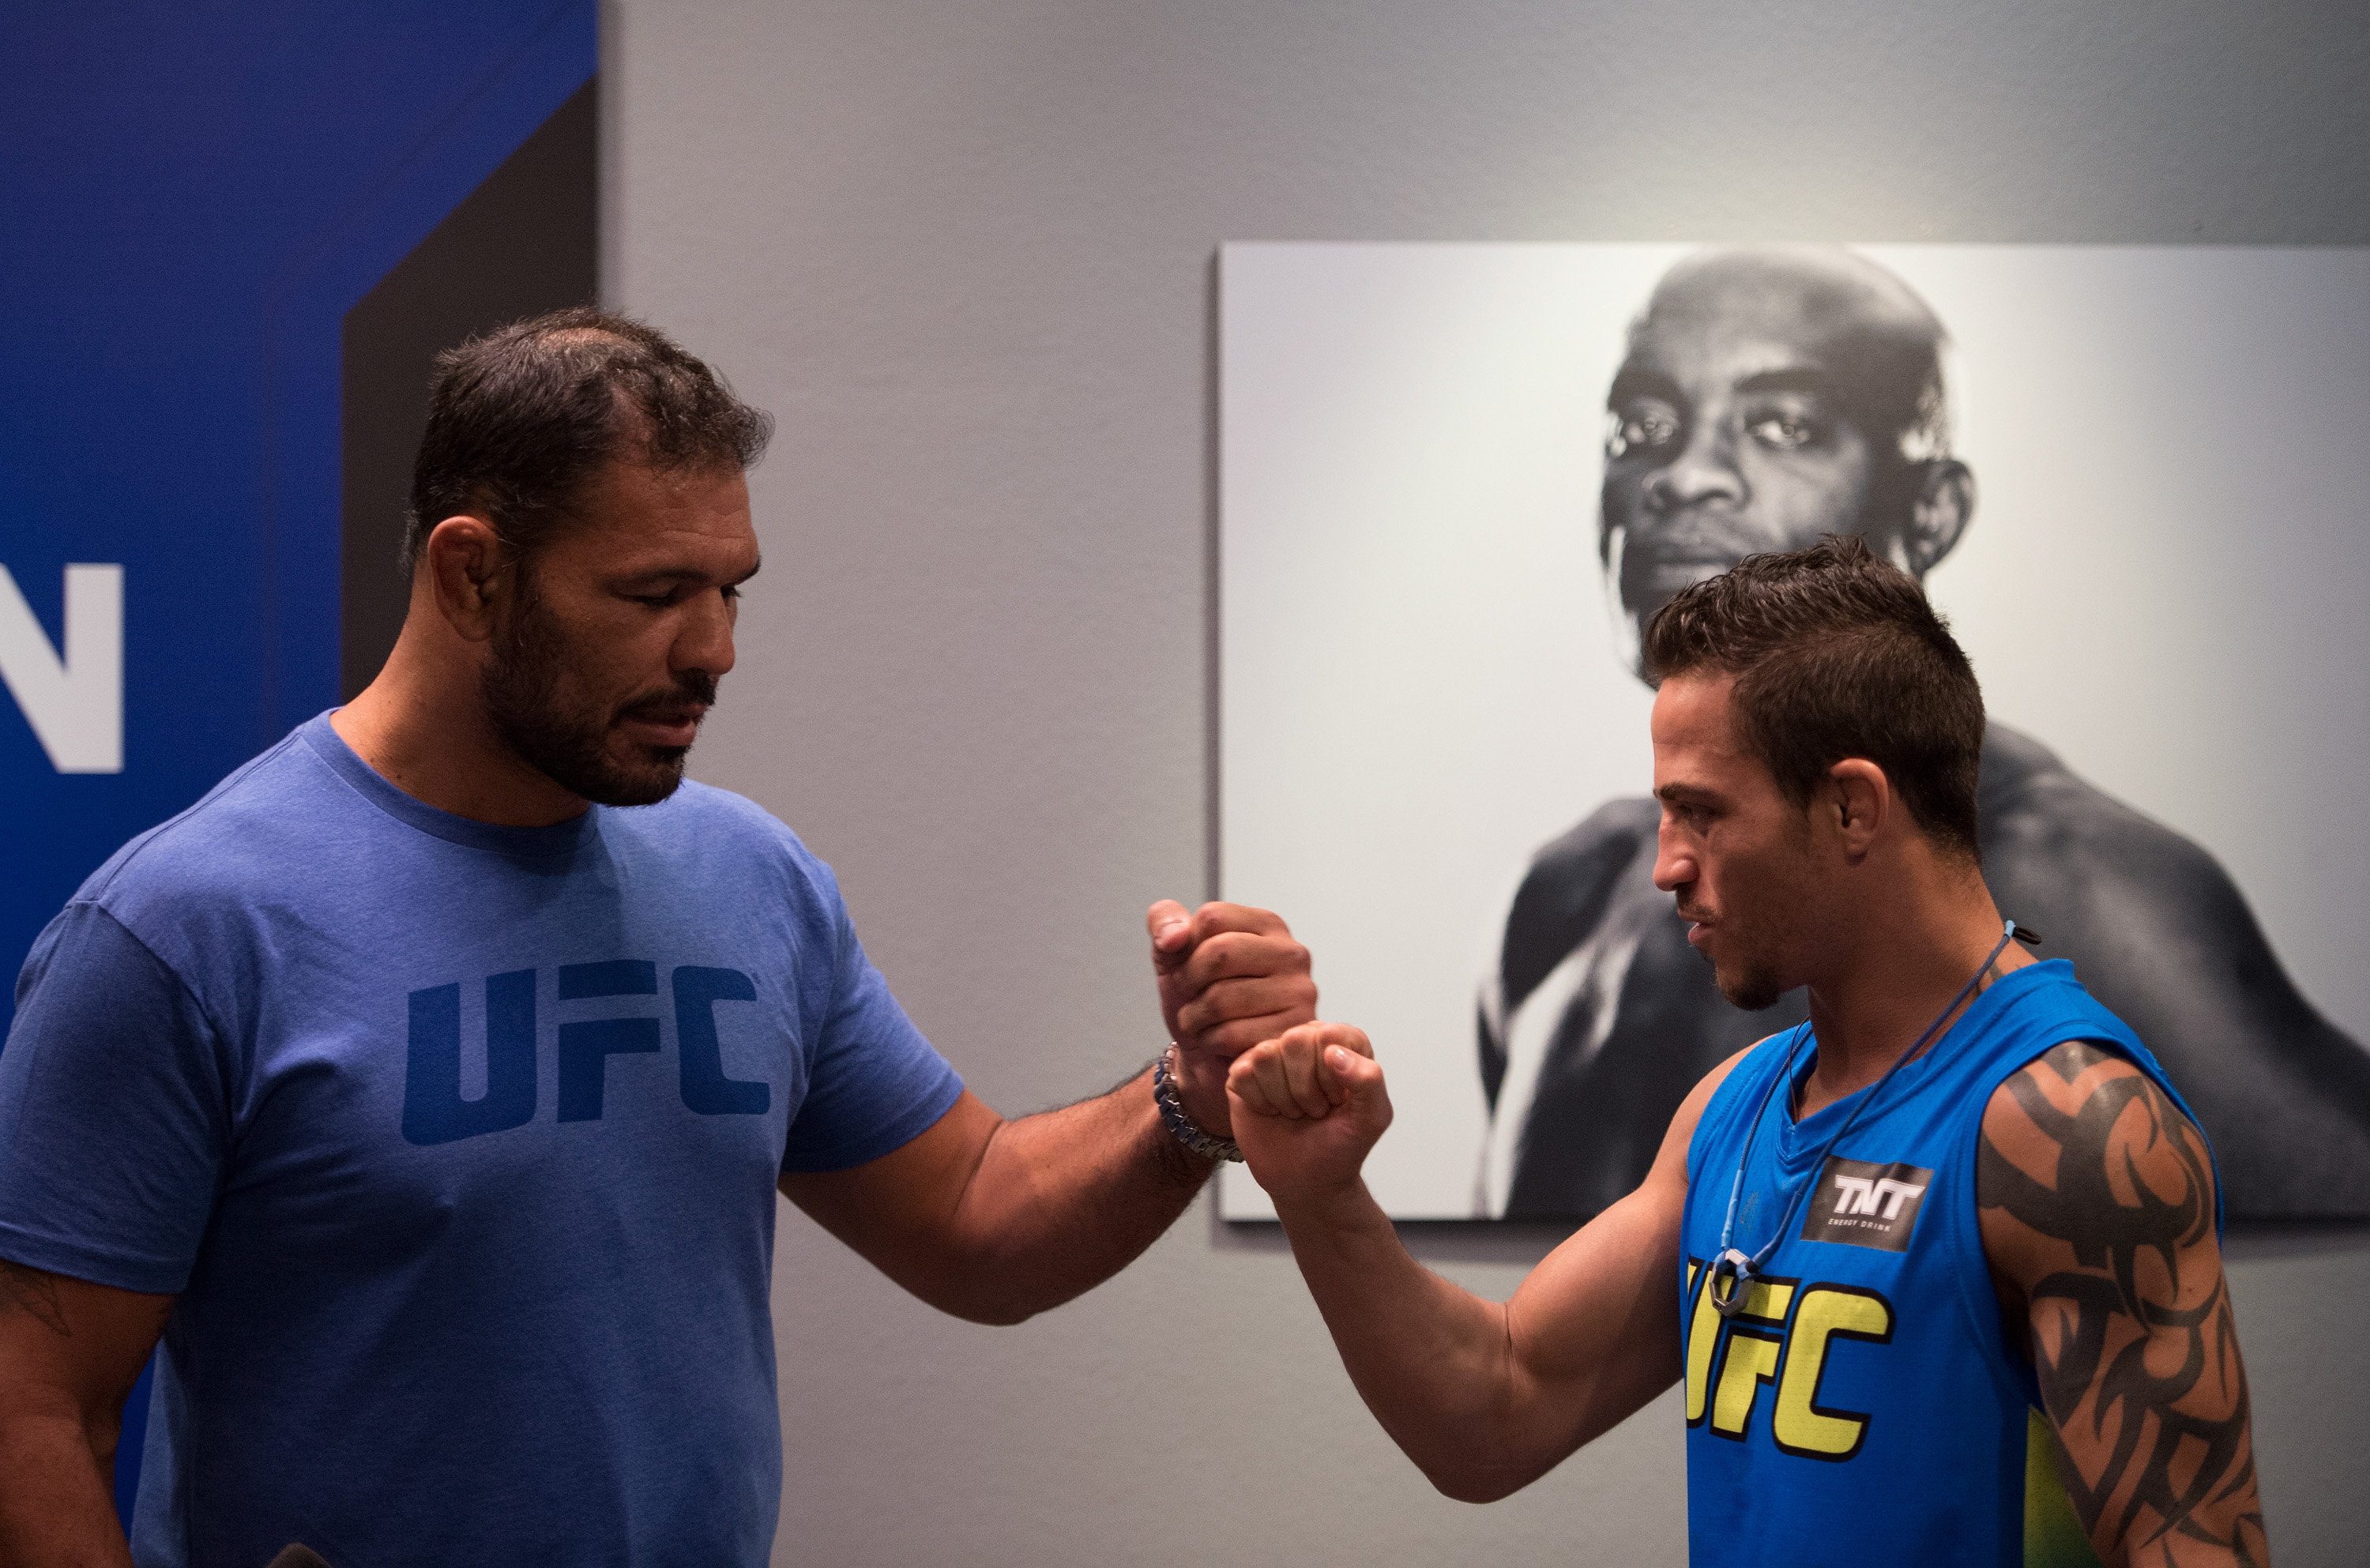 FEBRUARY 09:  (L-R) Head coach Antonio Nogueira preps Reginaldo Vera before his fight against Matheus Nicolau during the filming of The Ultimate Fighter Brazil: Team Nogueira vs Team Rua on February 9, 2015 in Las Vegas, Nevada. (Photo by Brandon Magnus/Zuffa LLC/Zuffa LLC via Getty Images)